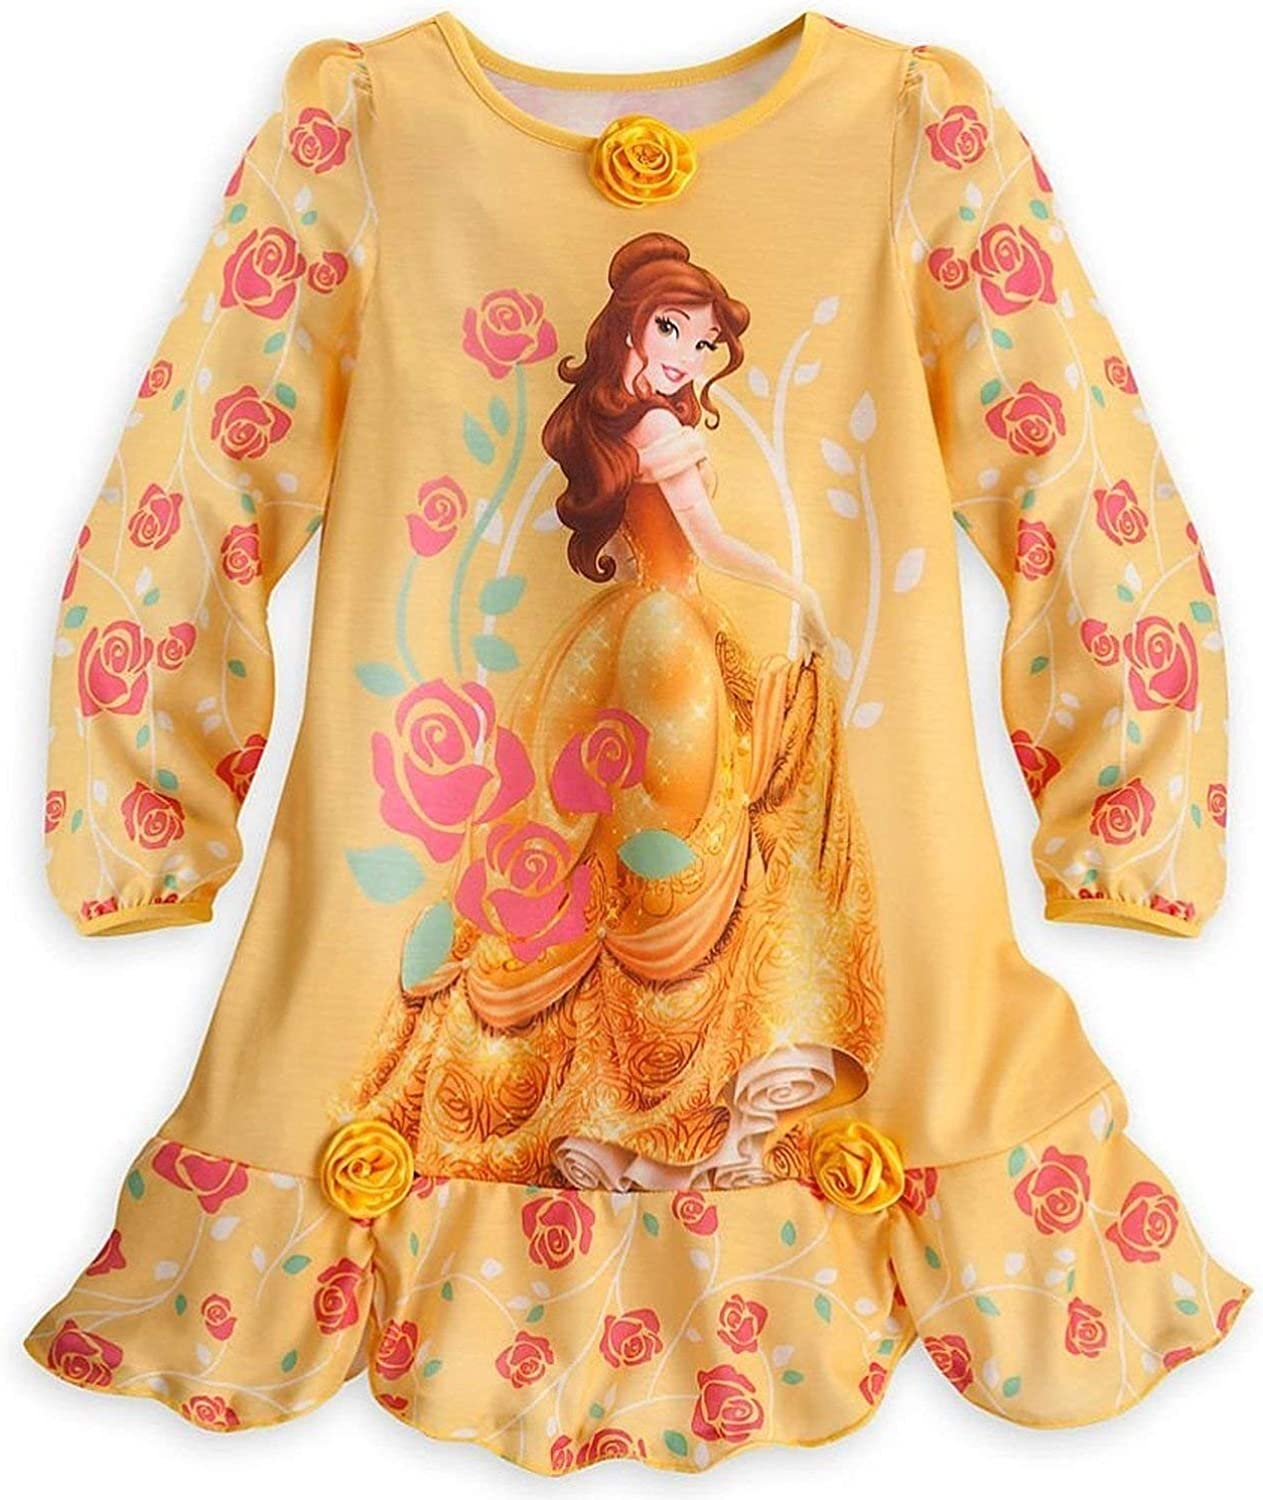 Disney Store Princess Belle Girl Long Sleeve Deluxe Nightgown Pajama Size 5/6